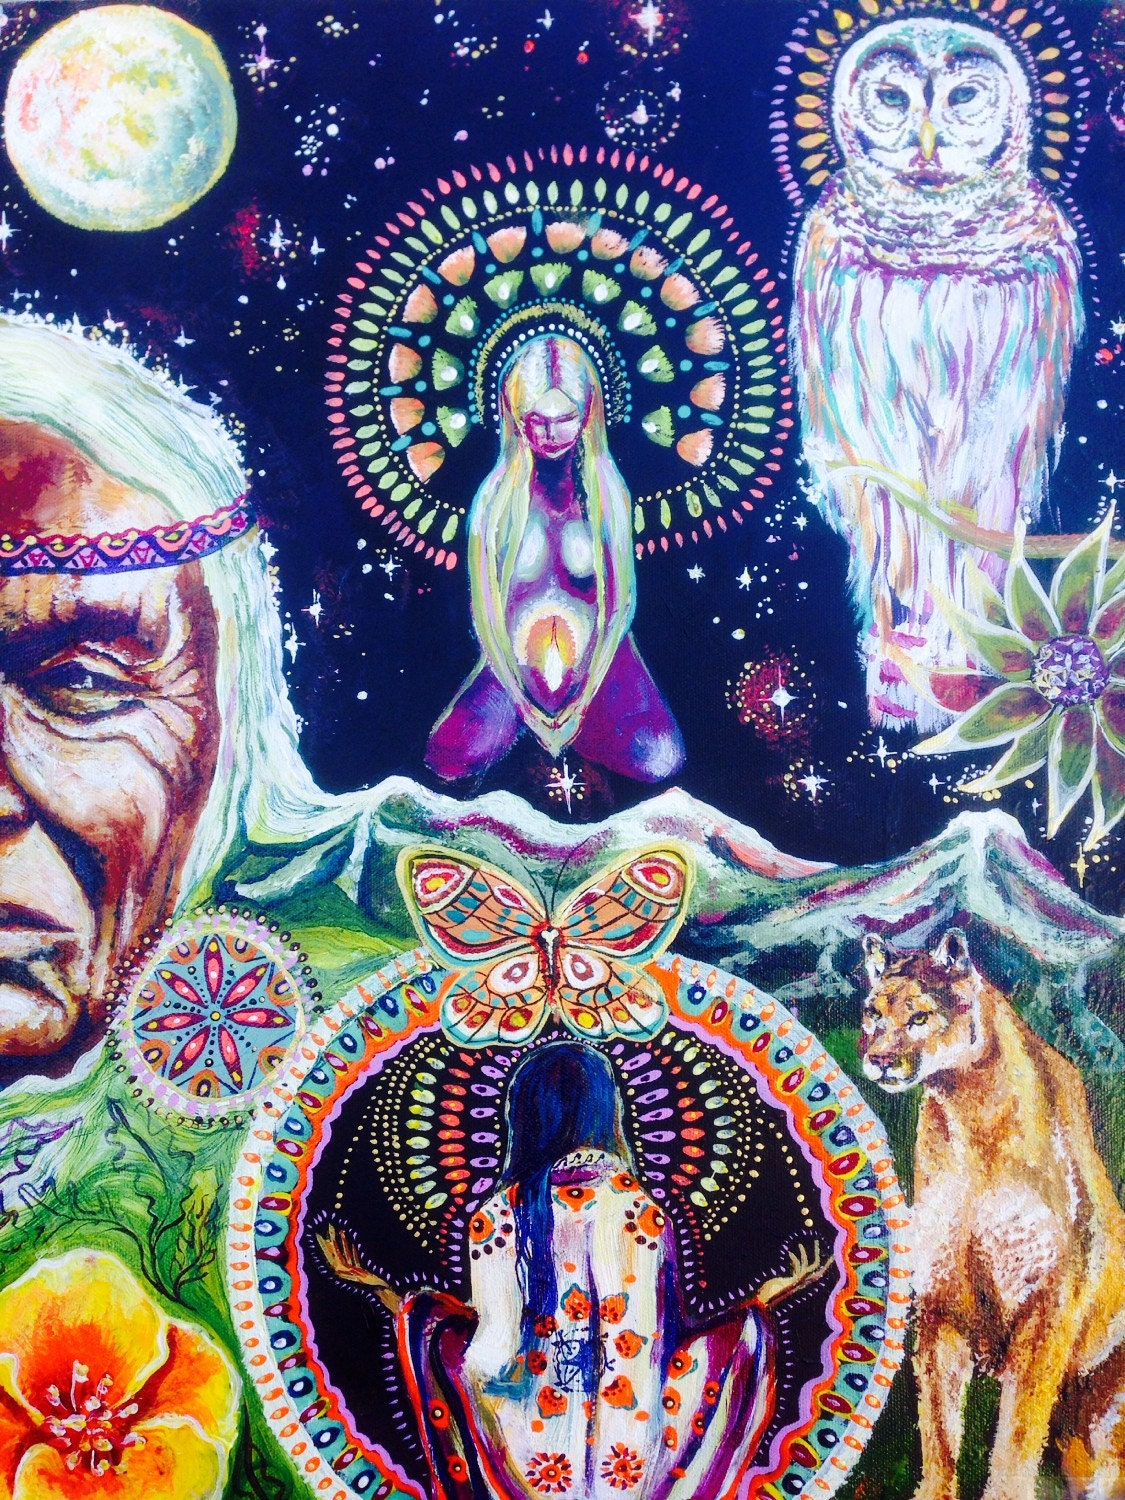 Vision Quest Visionary Art White Owl Butterfly Meditation